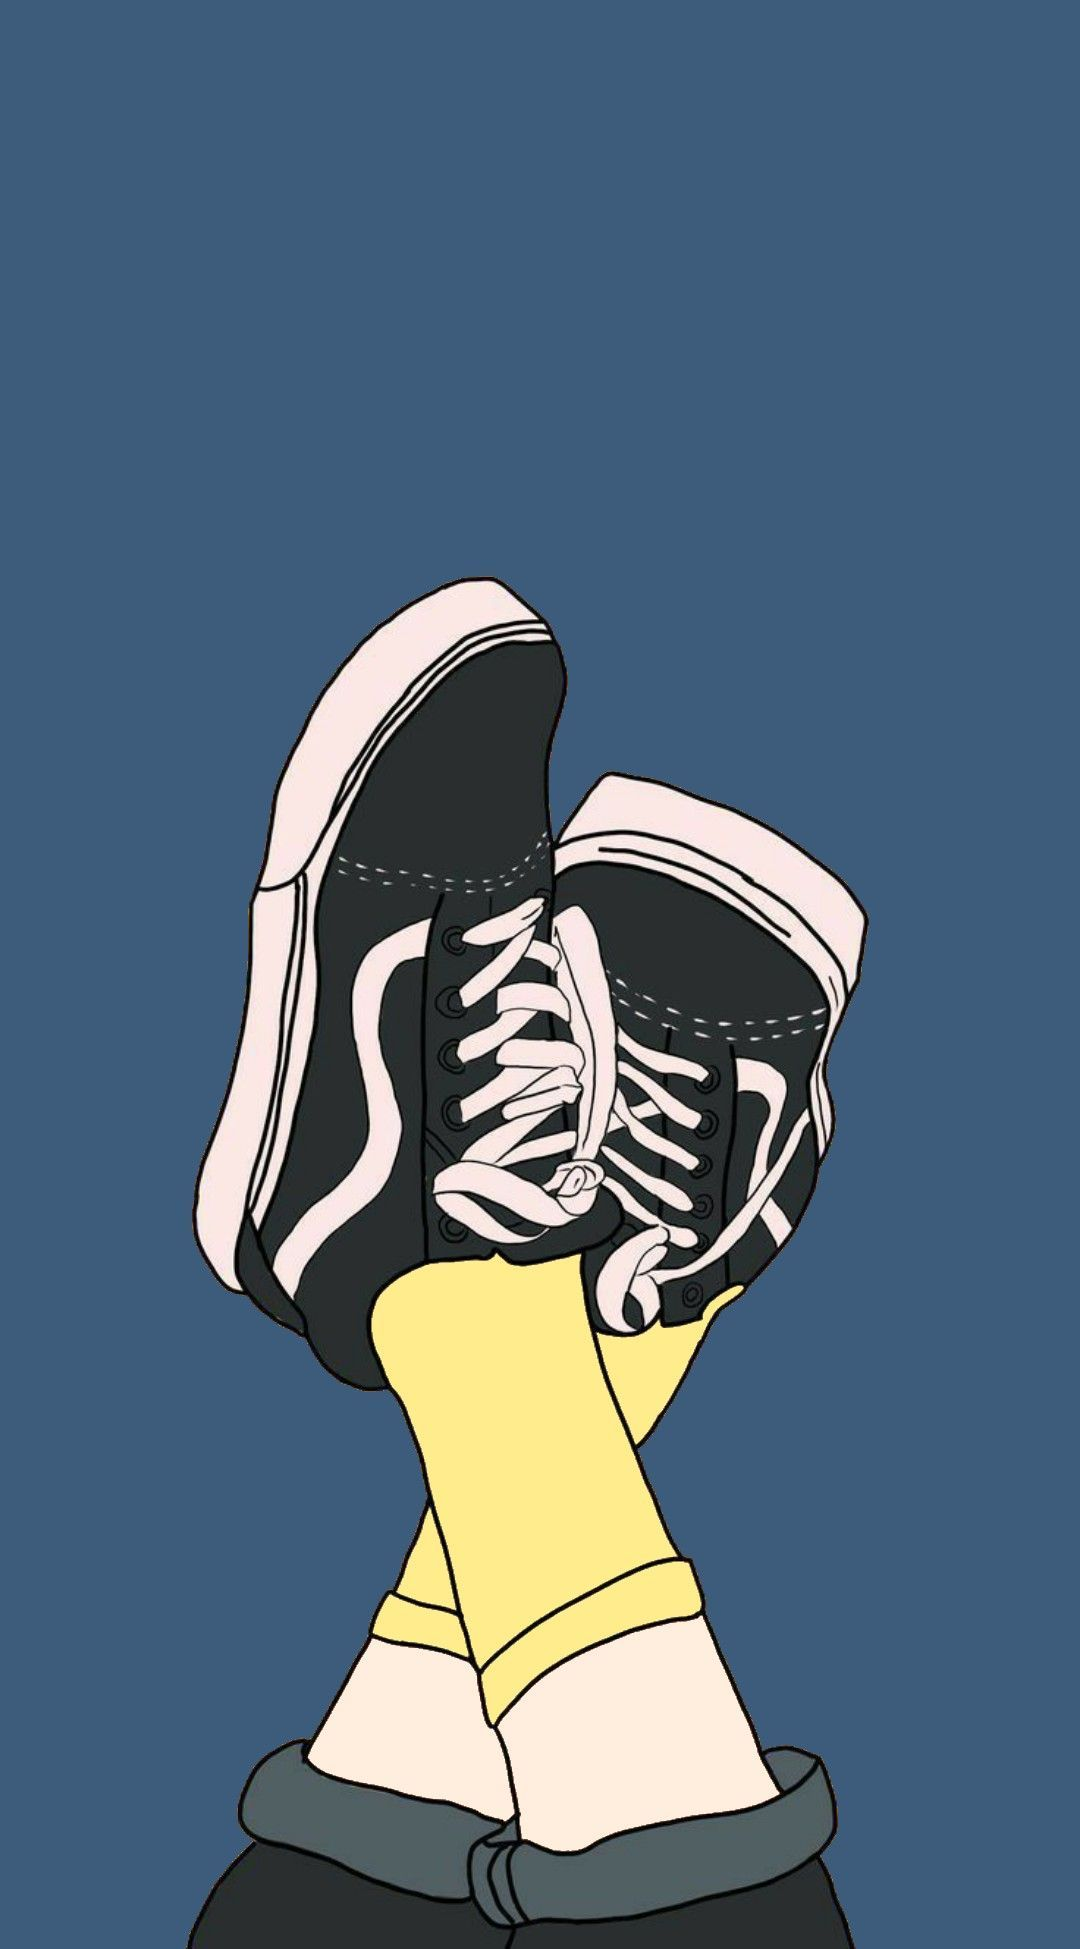 Get Most Downloaded Vans Wallpaper For Iphone 2019 By Uploaded By